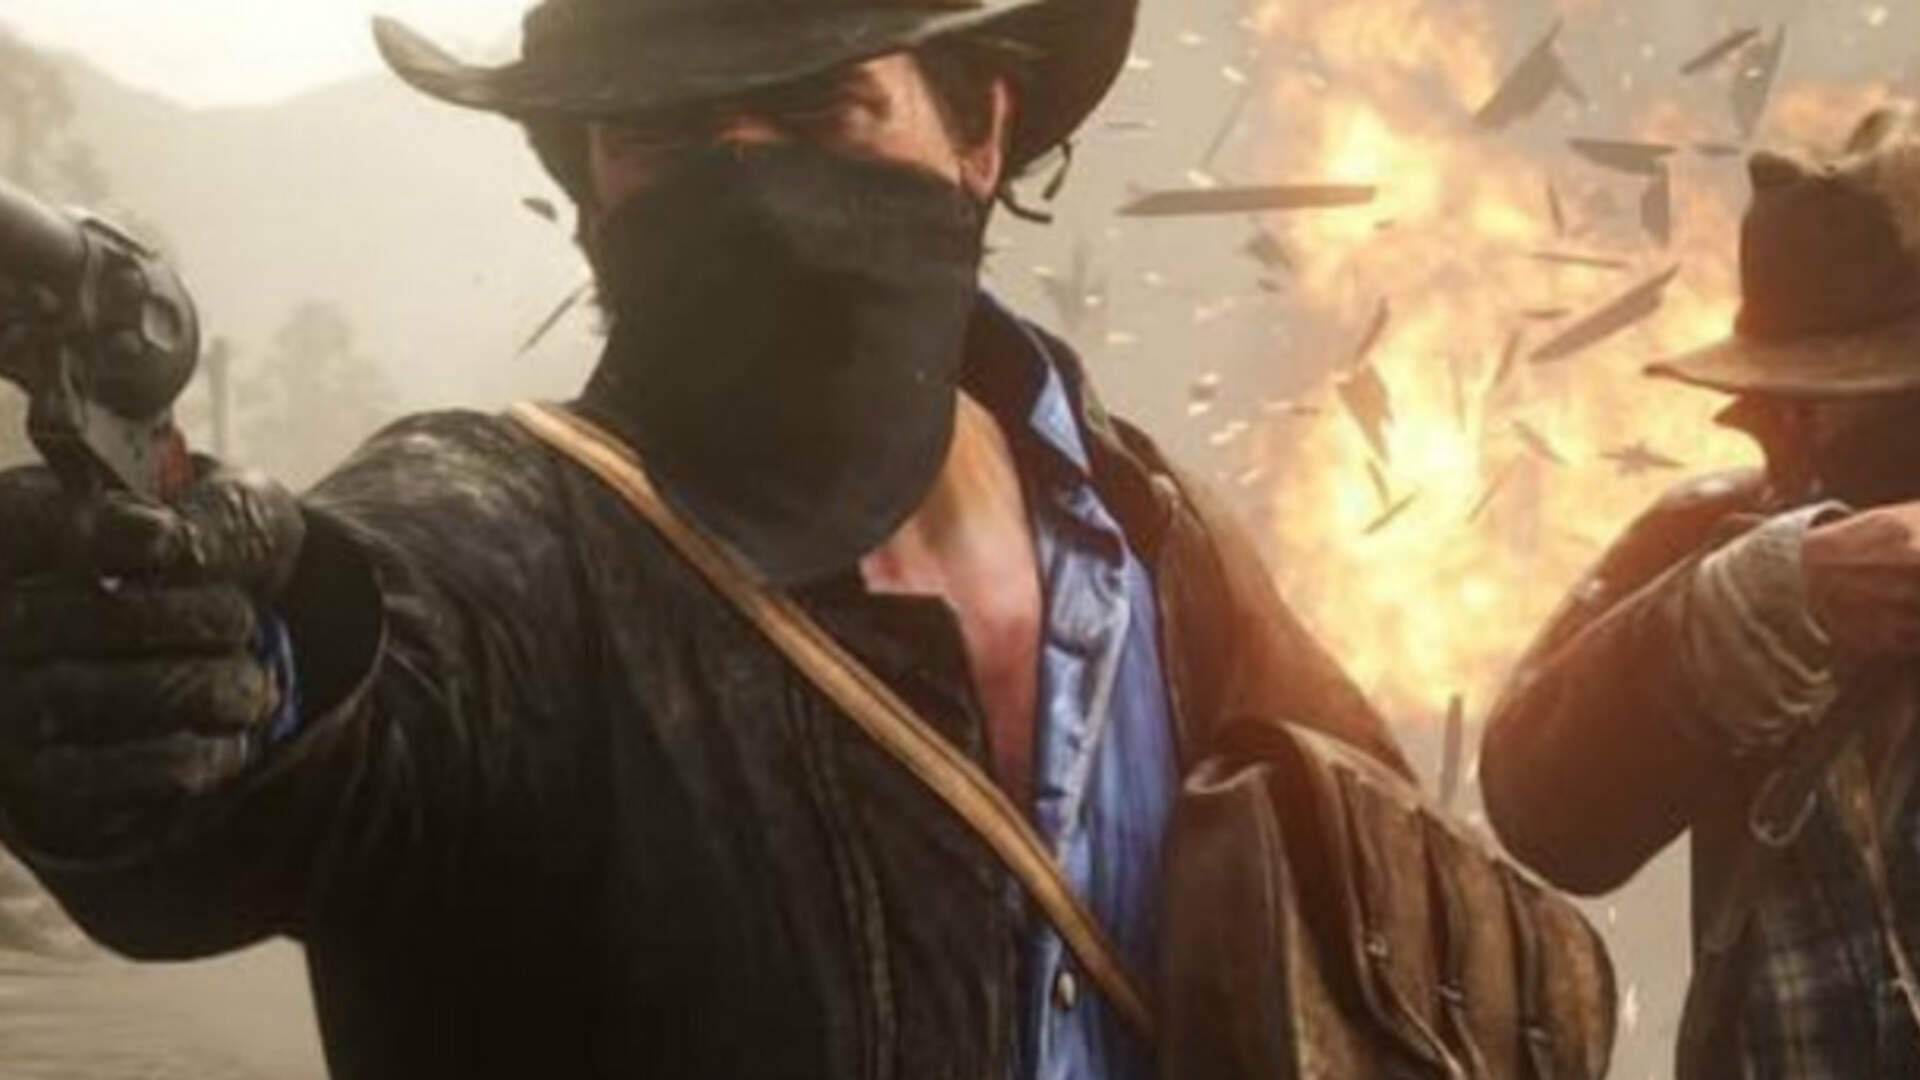 Red Dead Redemption 2 Second-Highest Grossing Entertainment Launch of All Time, Behind GTA 5